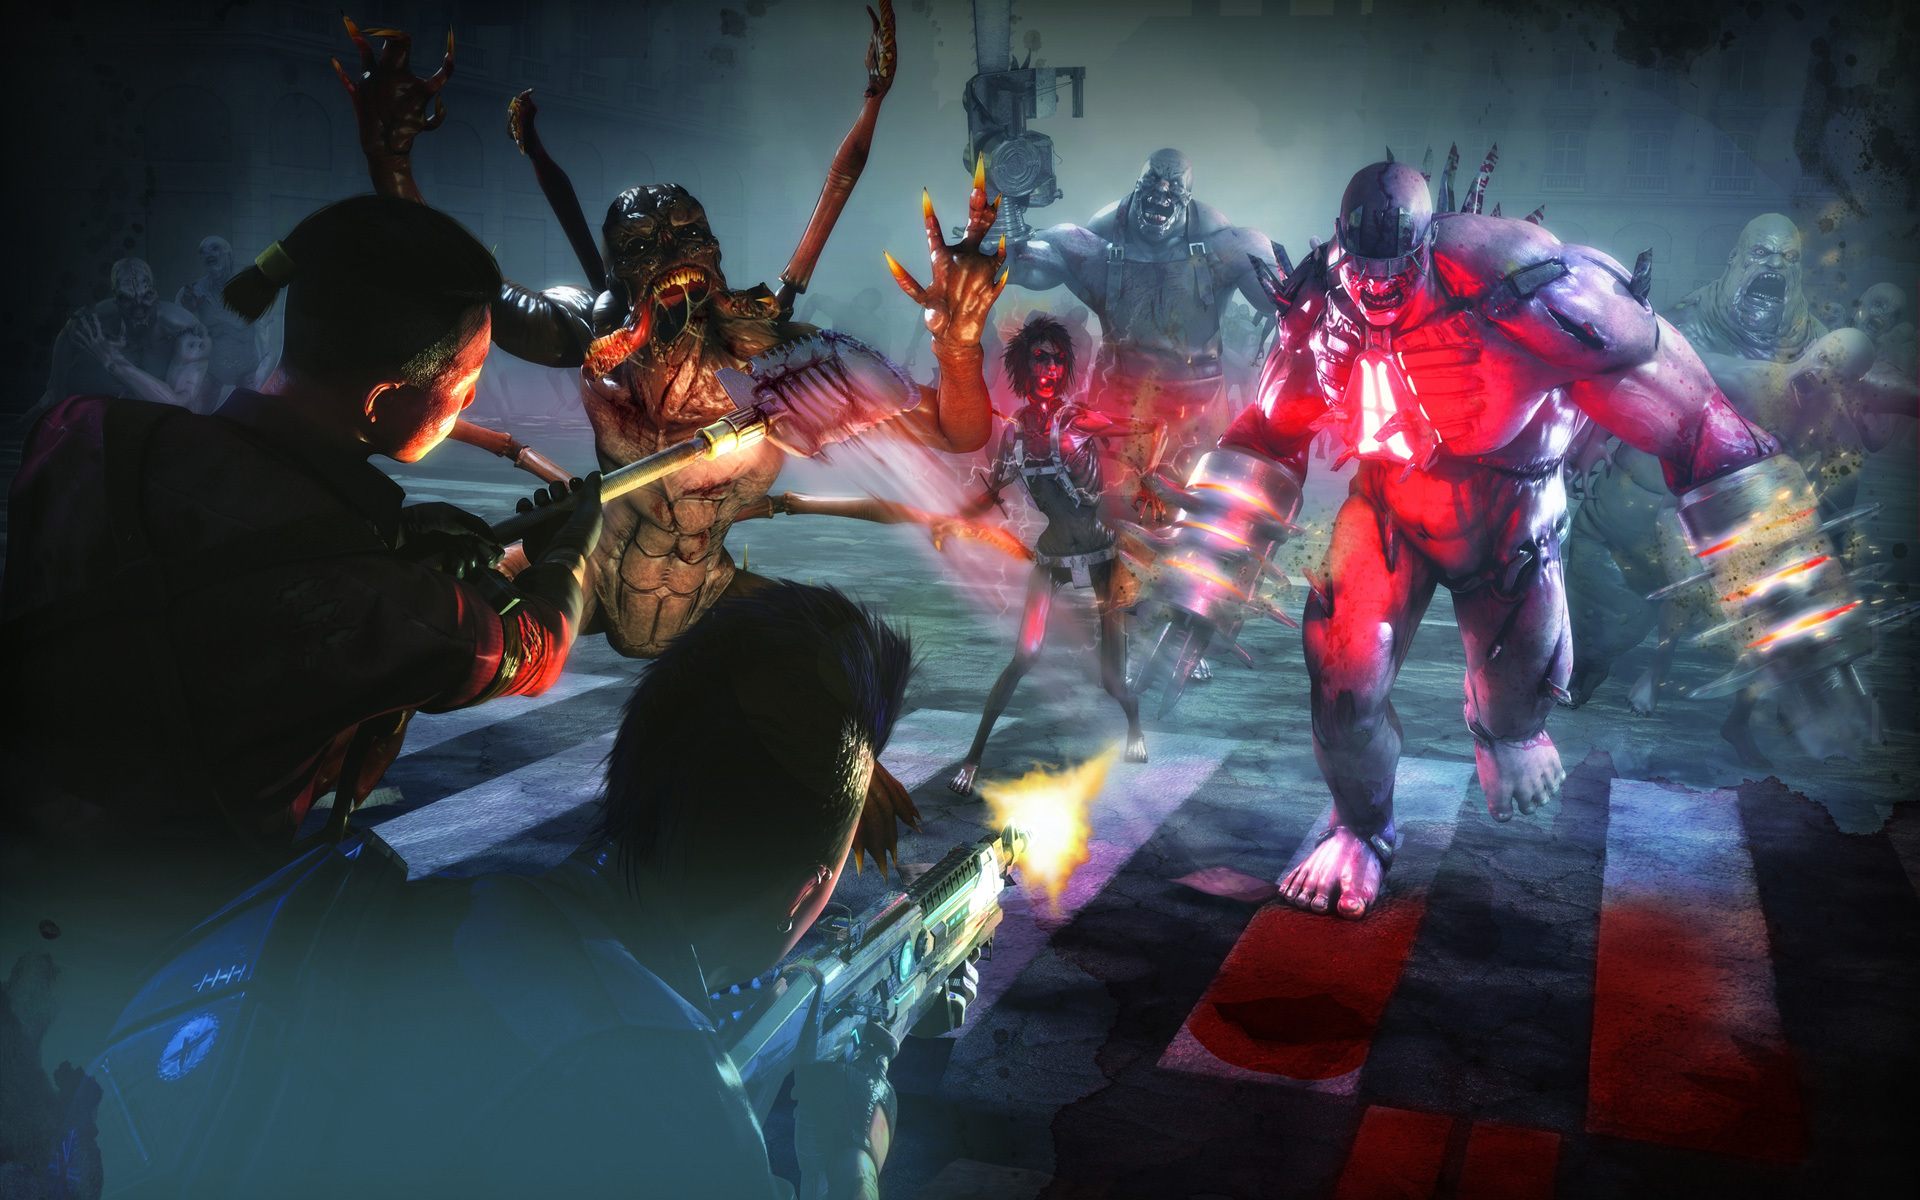 Killing floor 2 wallpapers images photos pictures backgrounds for How to play killing floor online